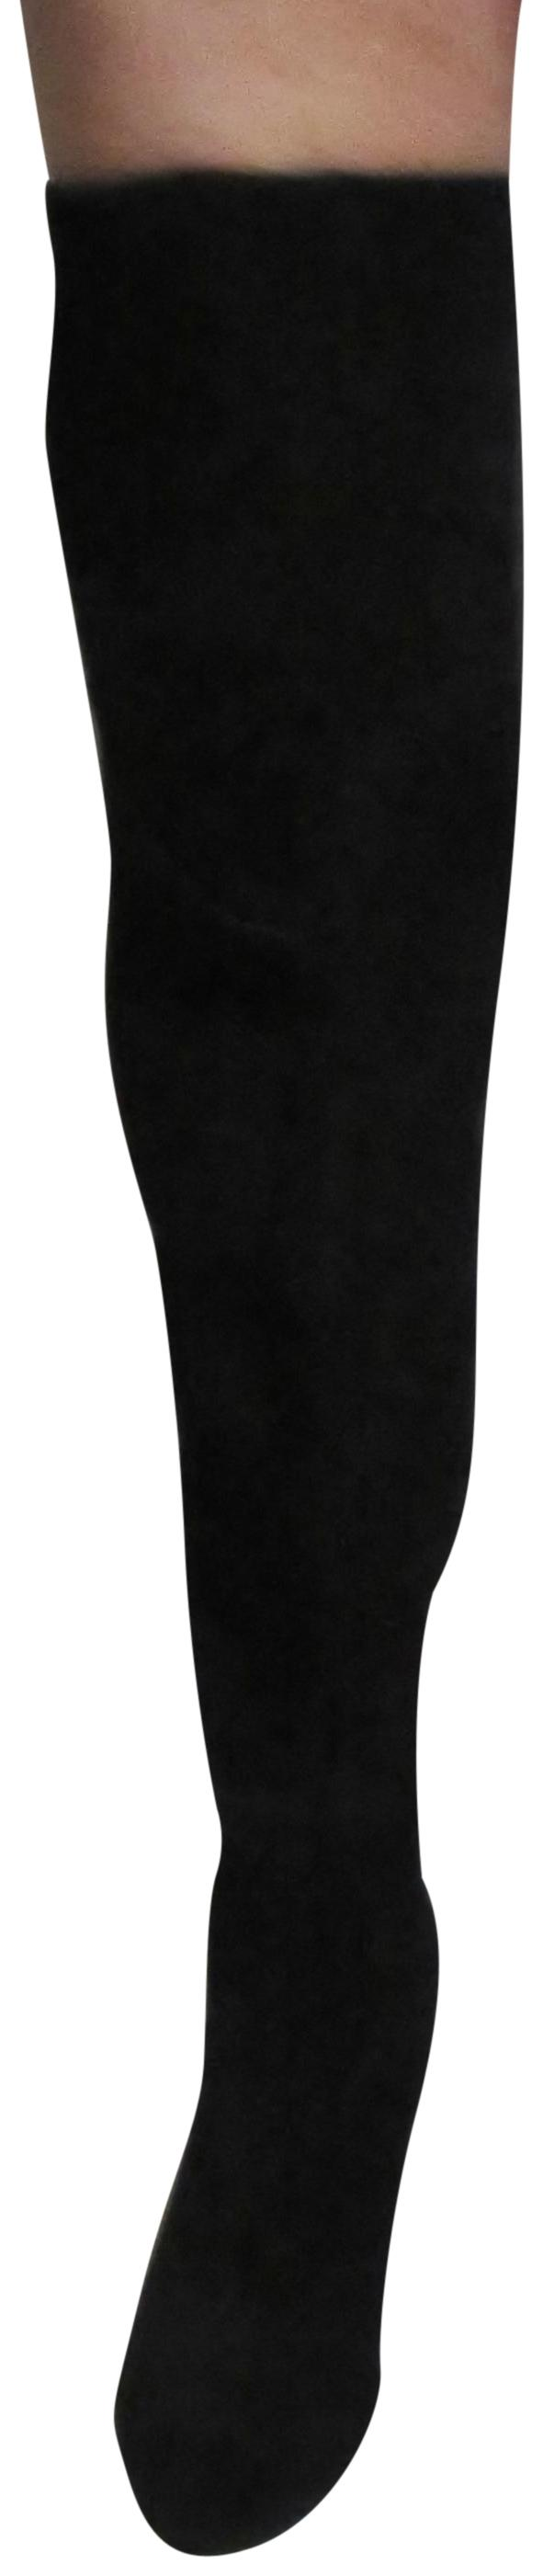 Vince Camuto Black New Suede Thigh High Fold To Knee High M Boots/Booties Size US 10 Regular (M, B)